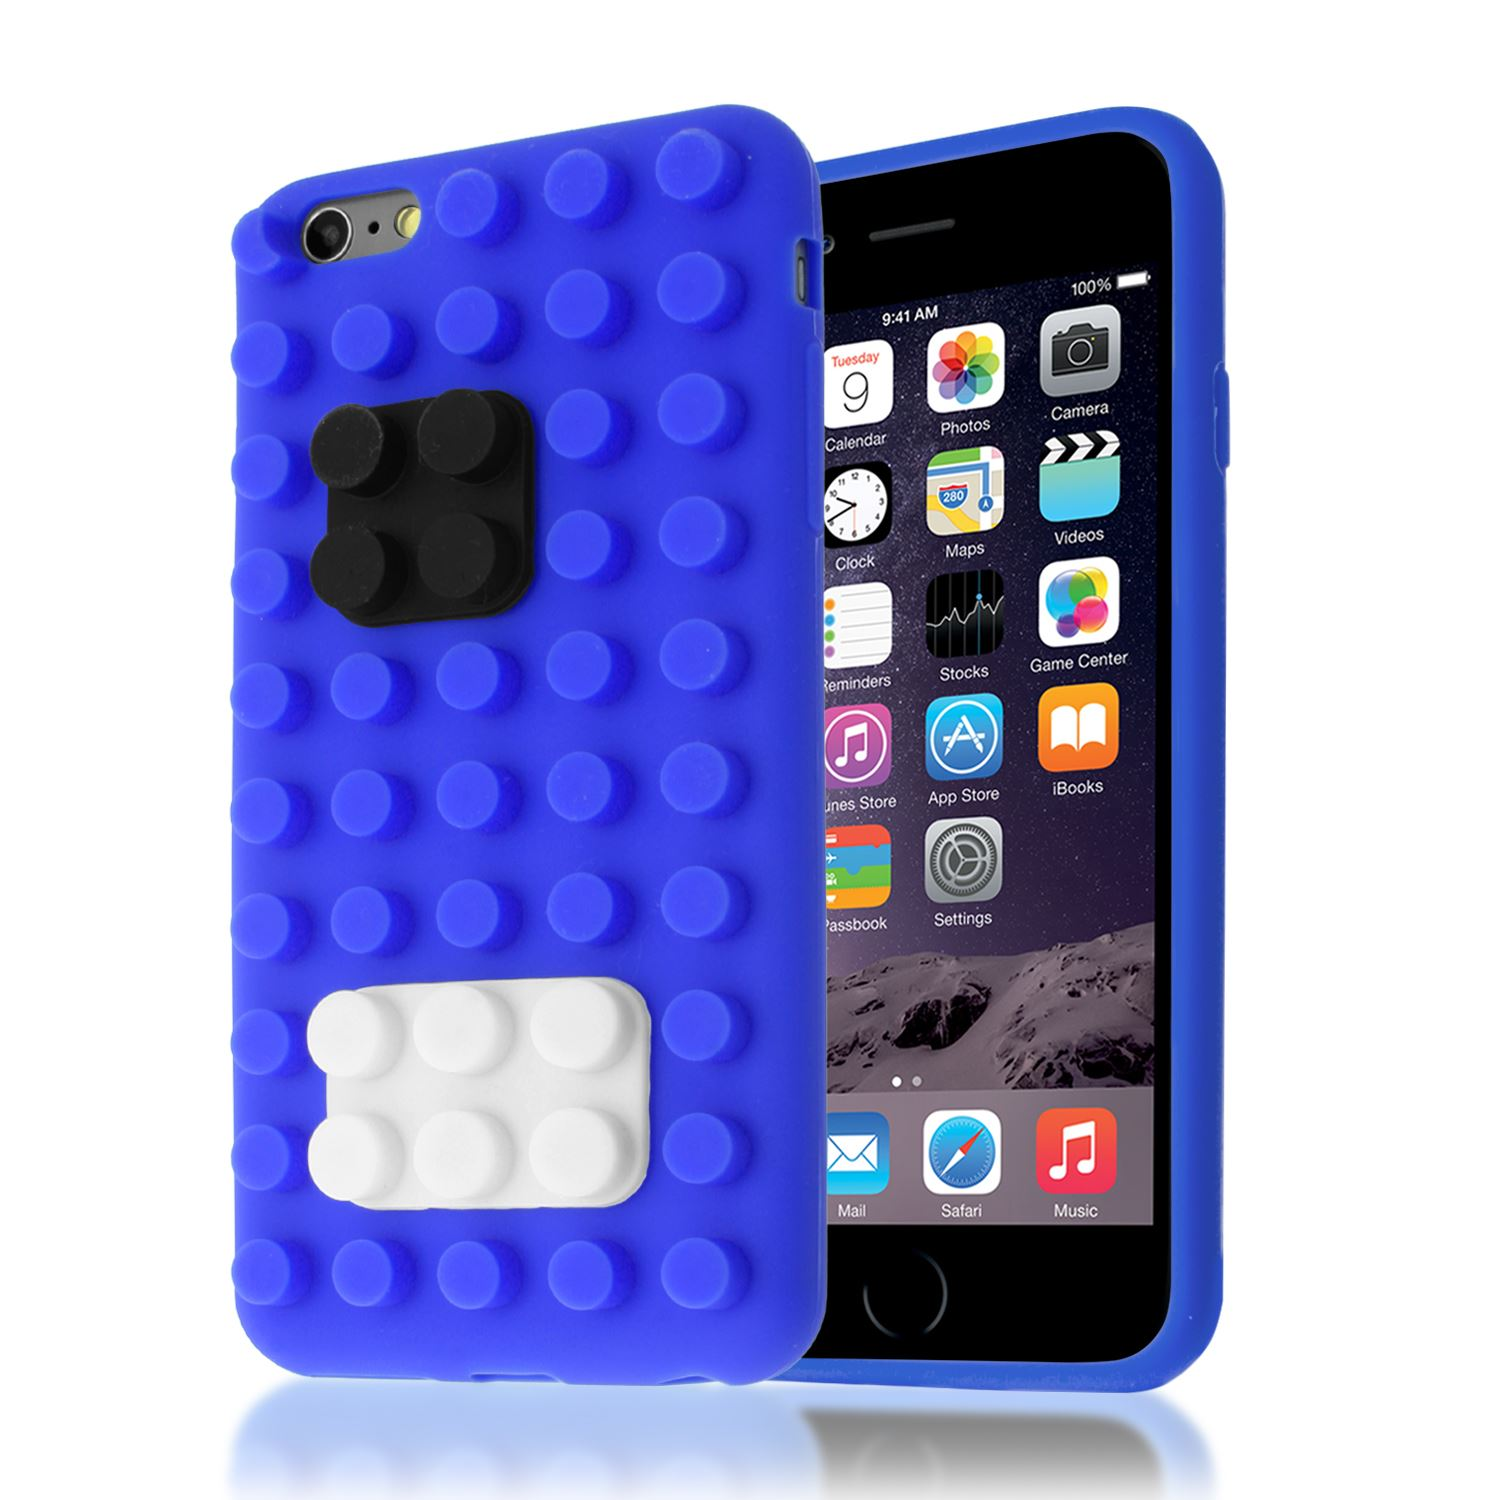 3d building lego blocks soft silicone case stand cover for apple iphone 6s plus ebay. Black Bedroom Furniture Sets. Home Design Ideas